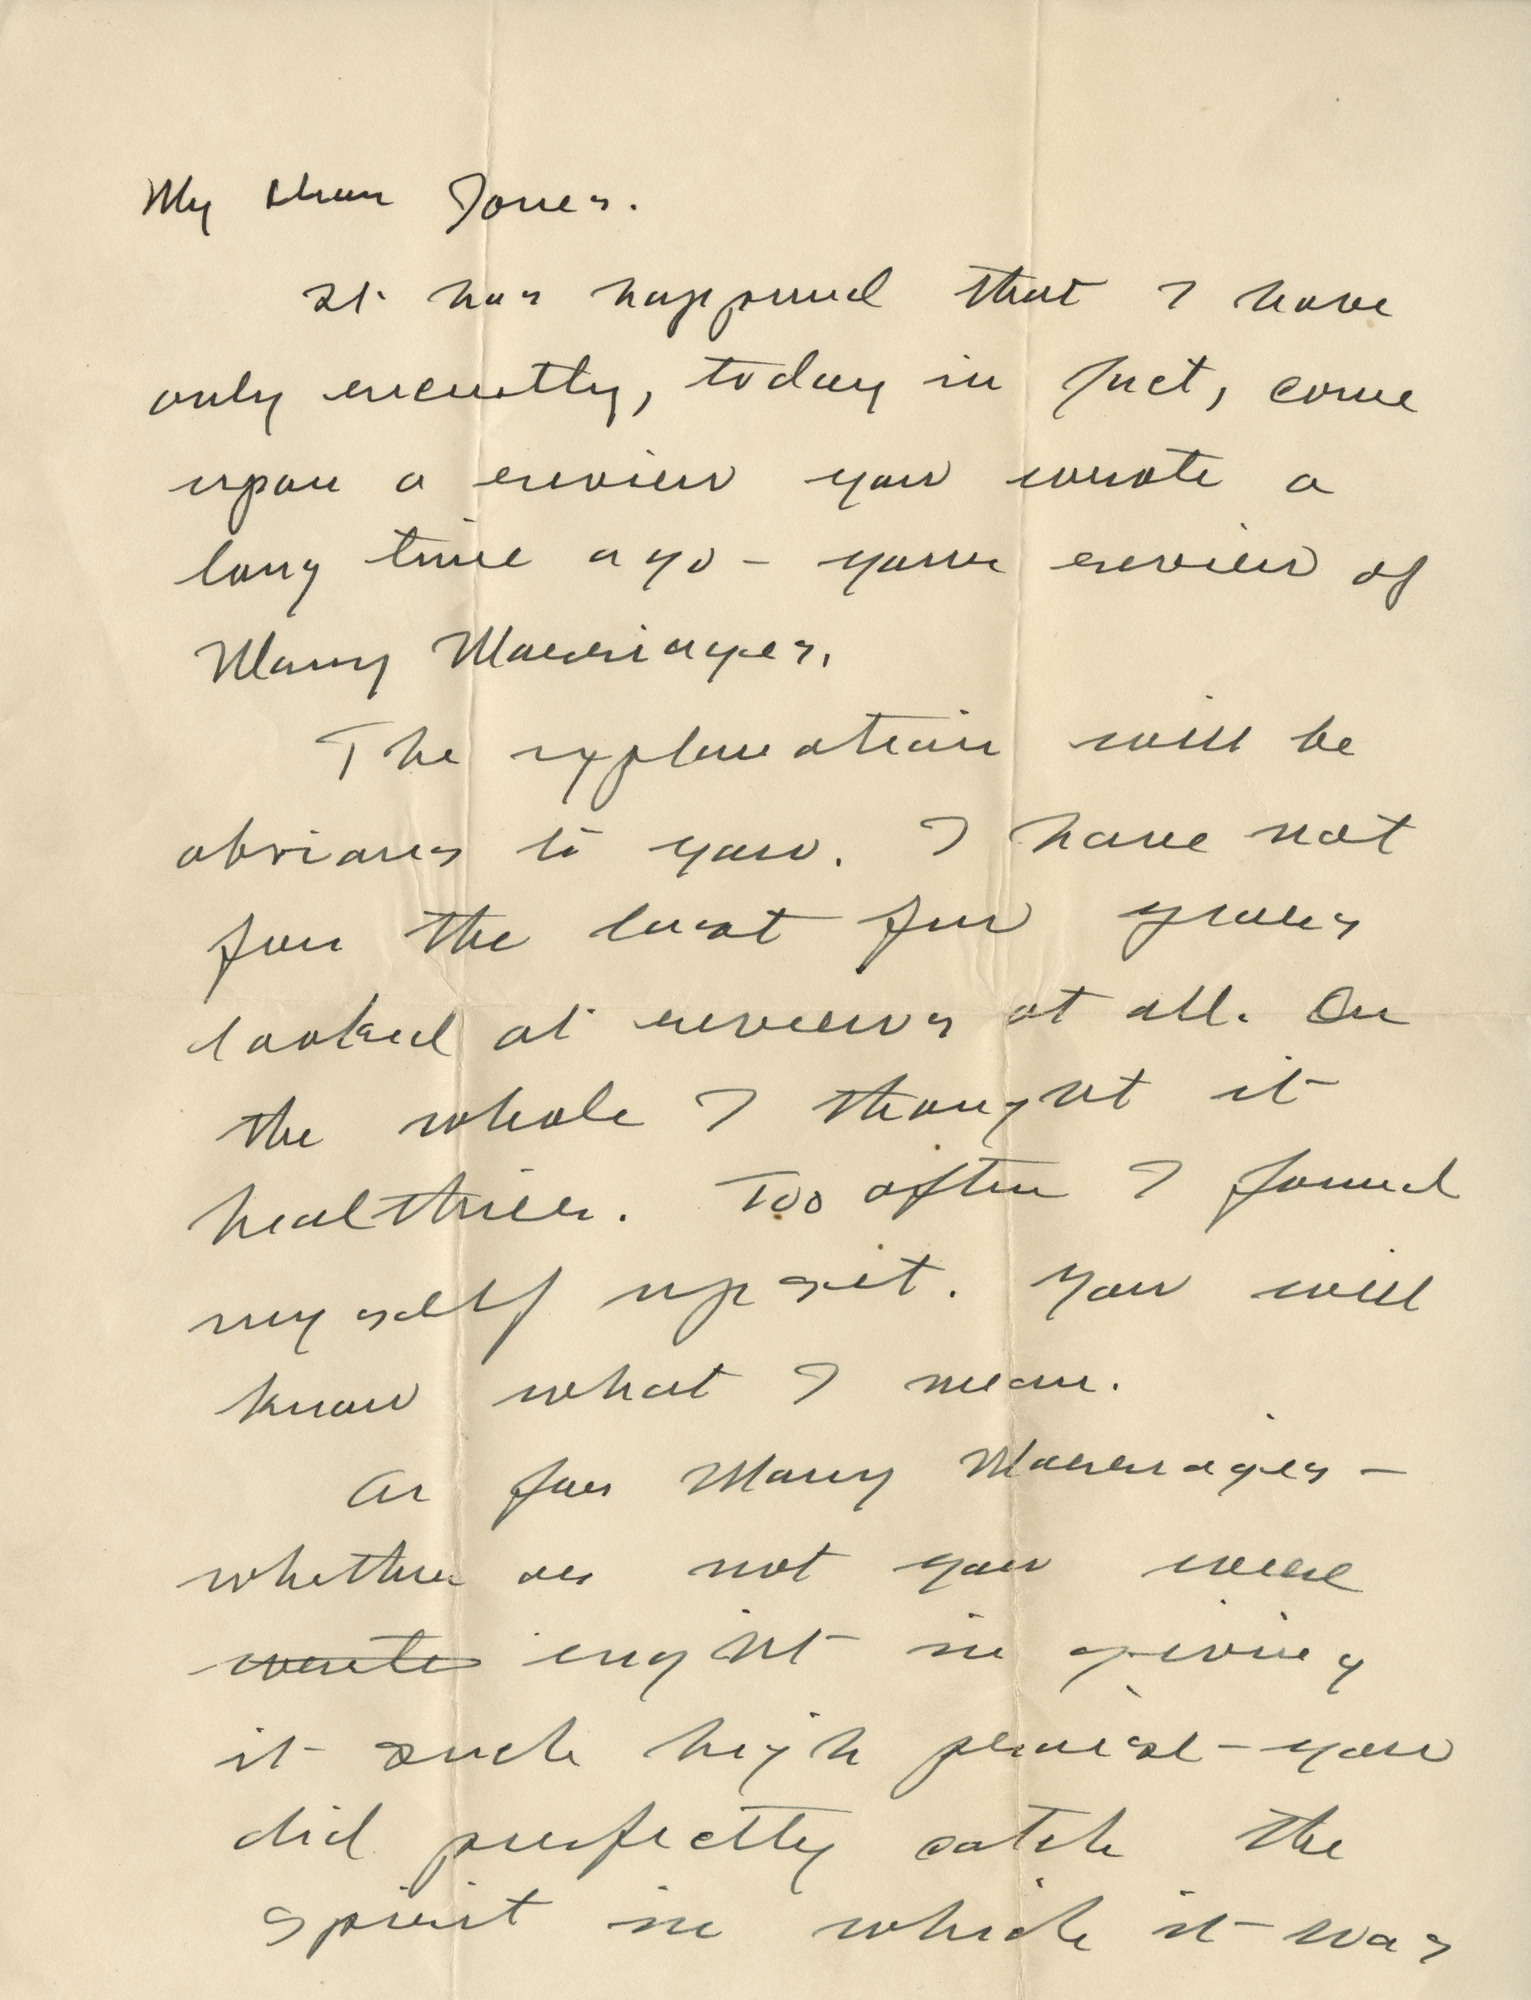 Ms2015-044_AndersonSherwood_Letter_1924_0722a.jpg